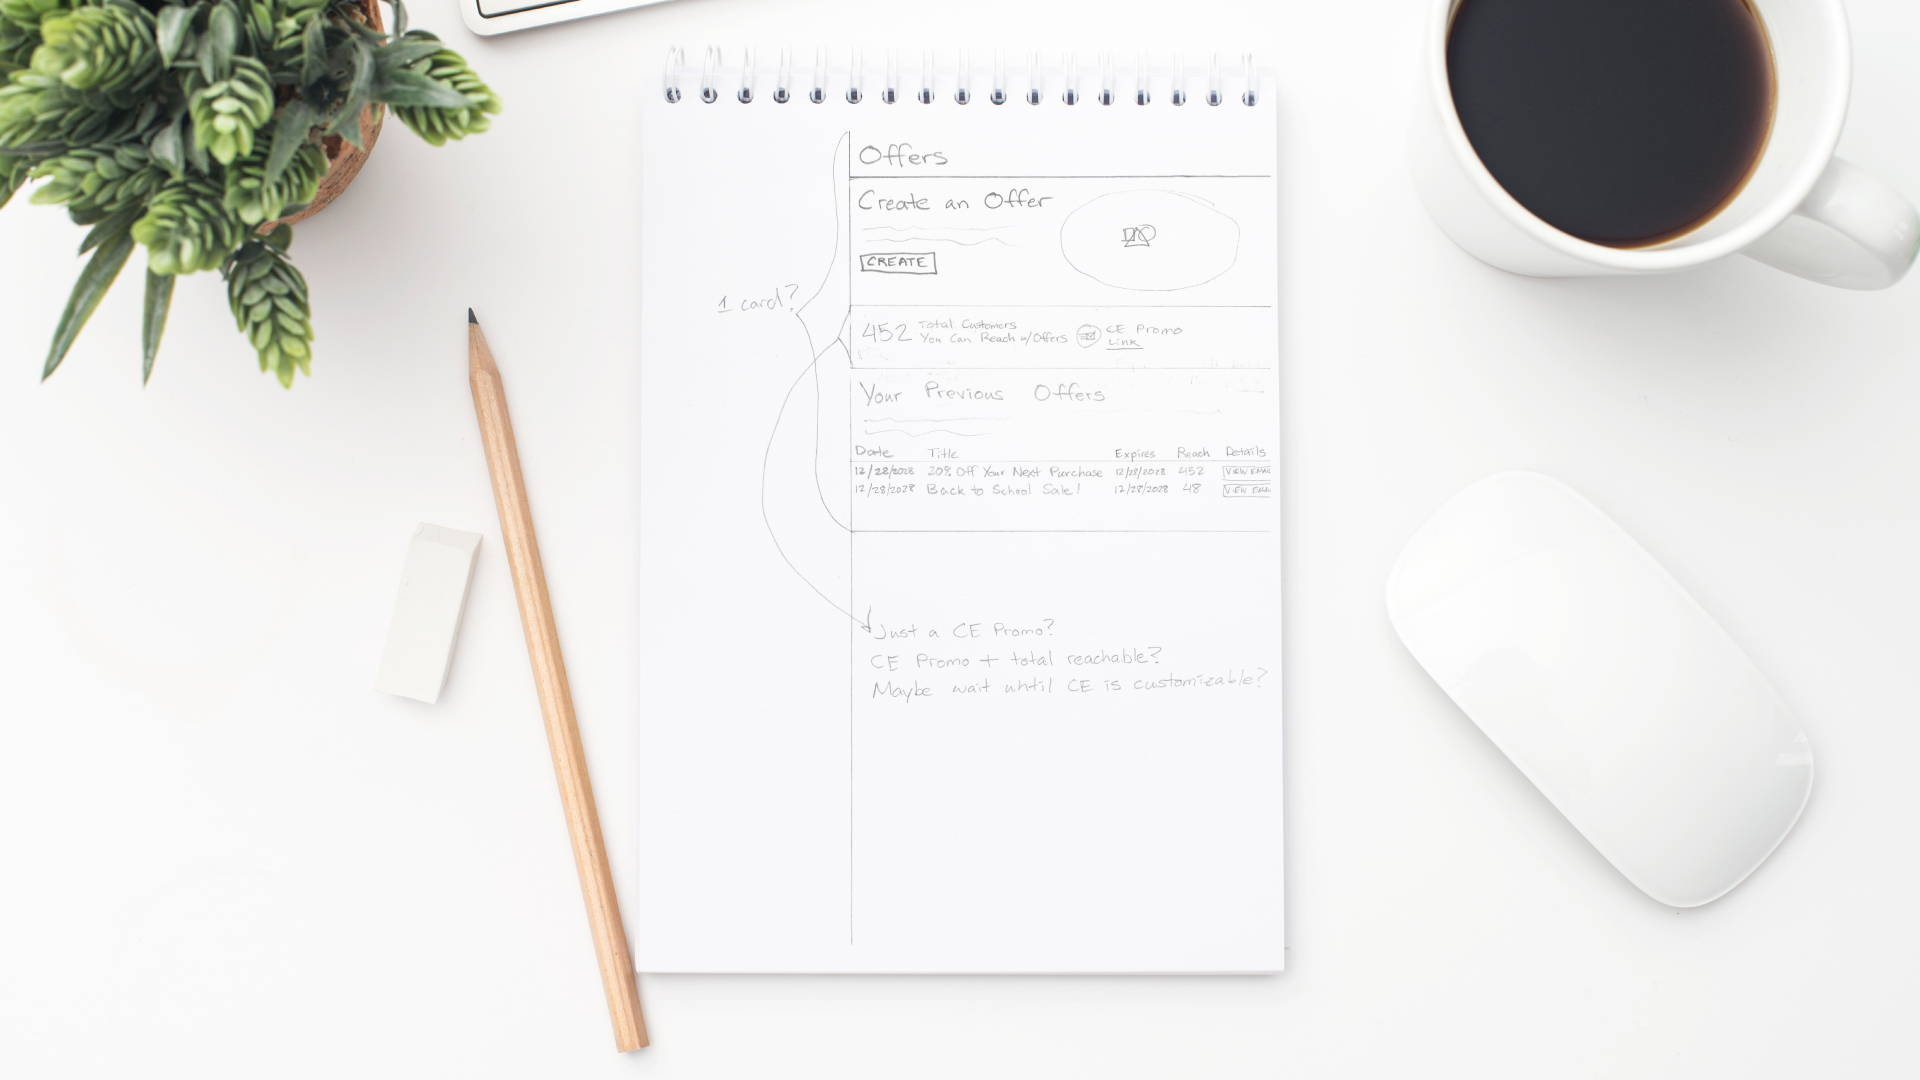 Initial Sketches for Identifying the Components of the Offers Product Page